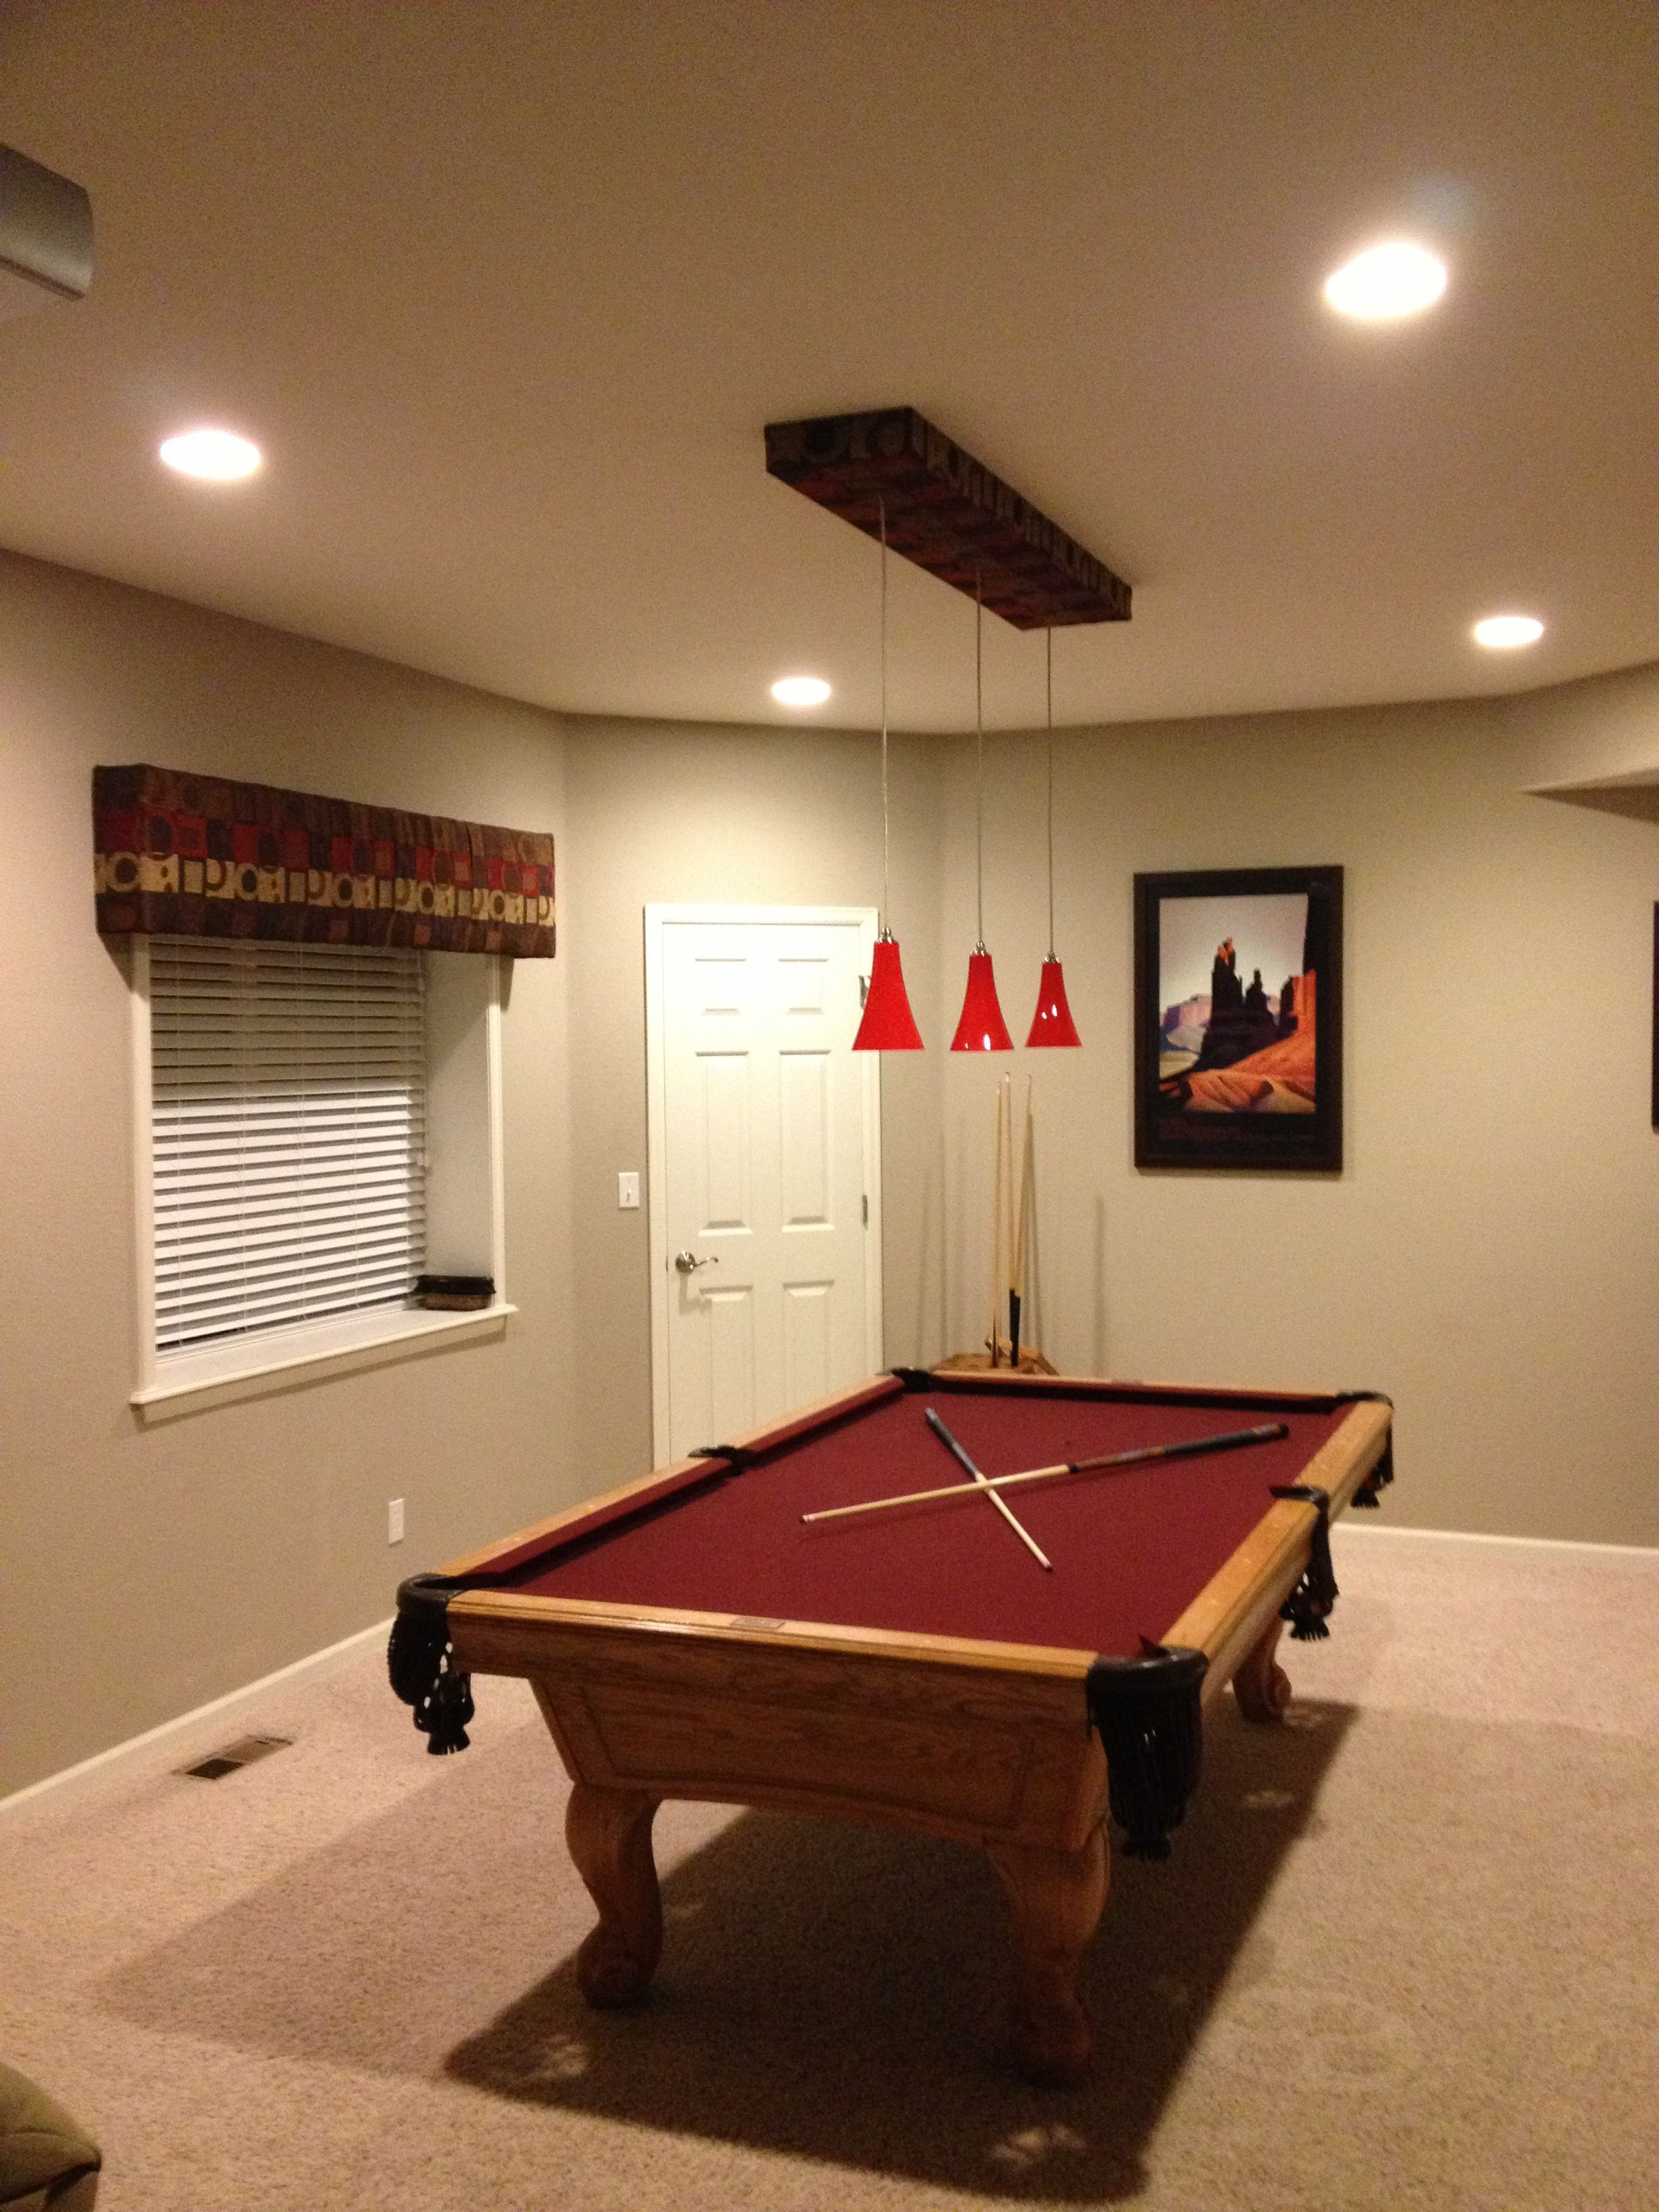 Accessories Amp Furniture Vintage Pool Table Design With